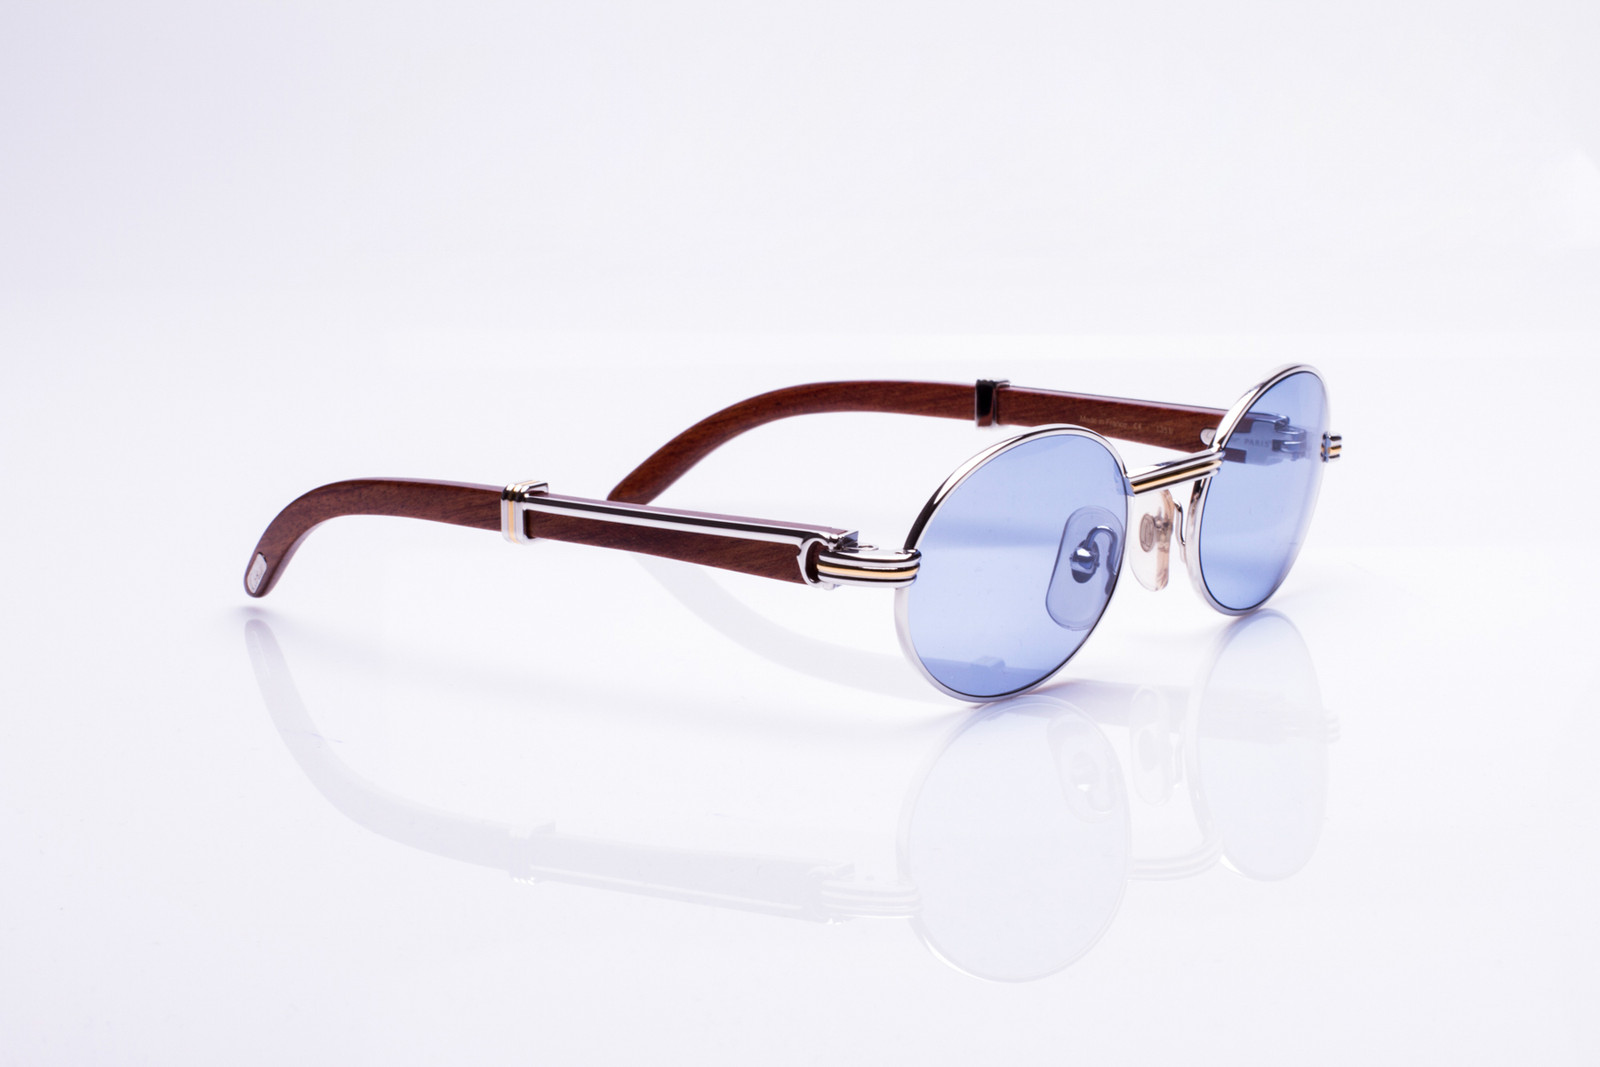 c74fd15b325 Here s 17 Vintage Frames Streetwear Brands Try to Imitate